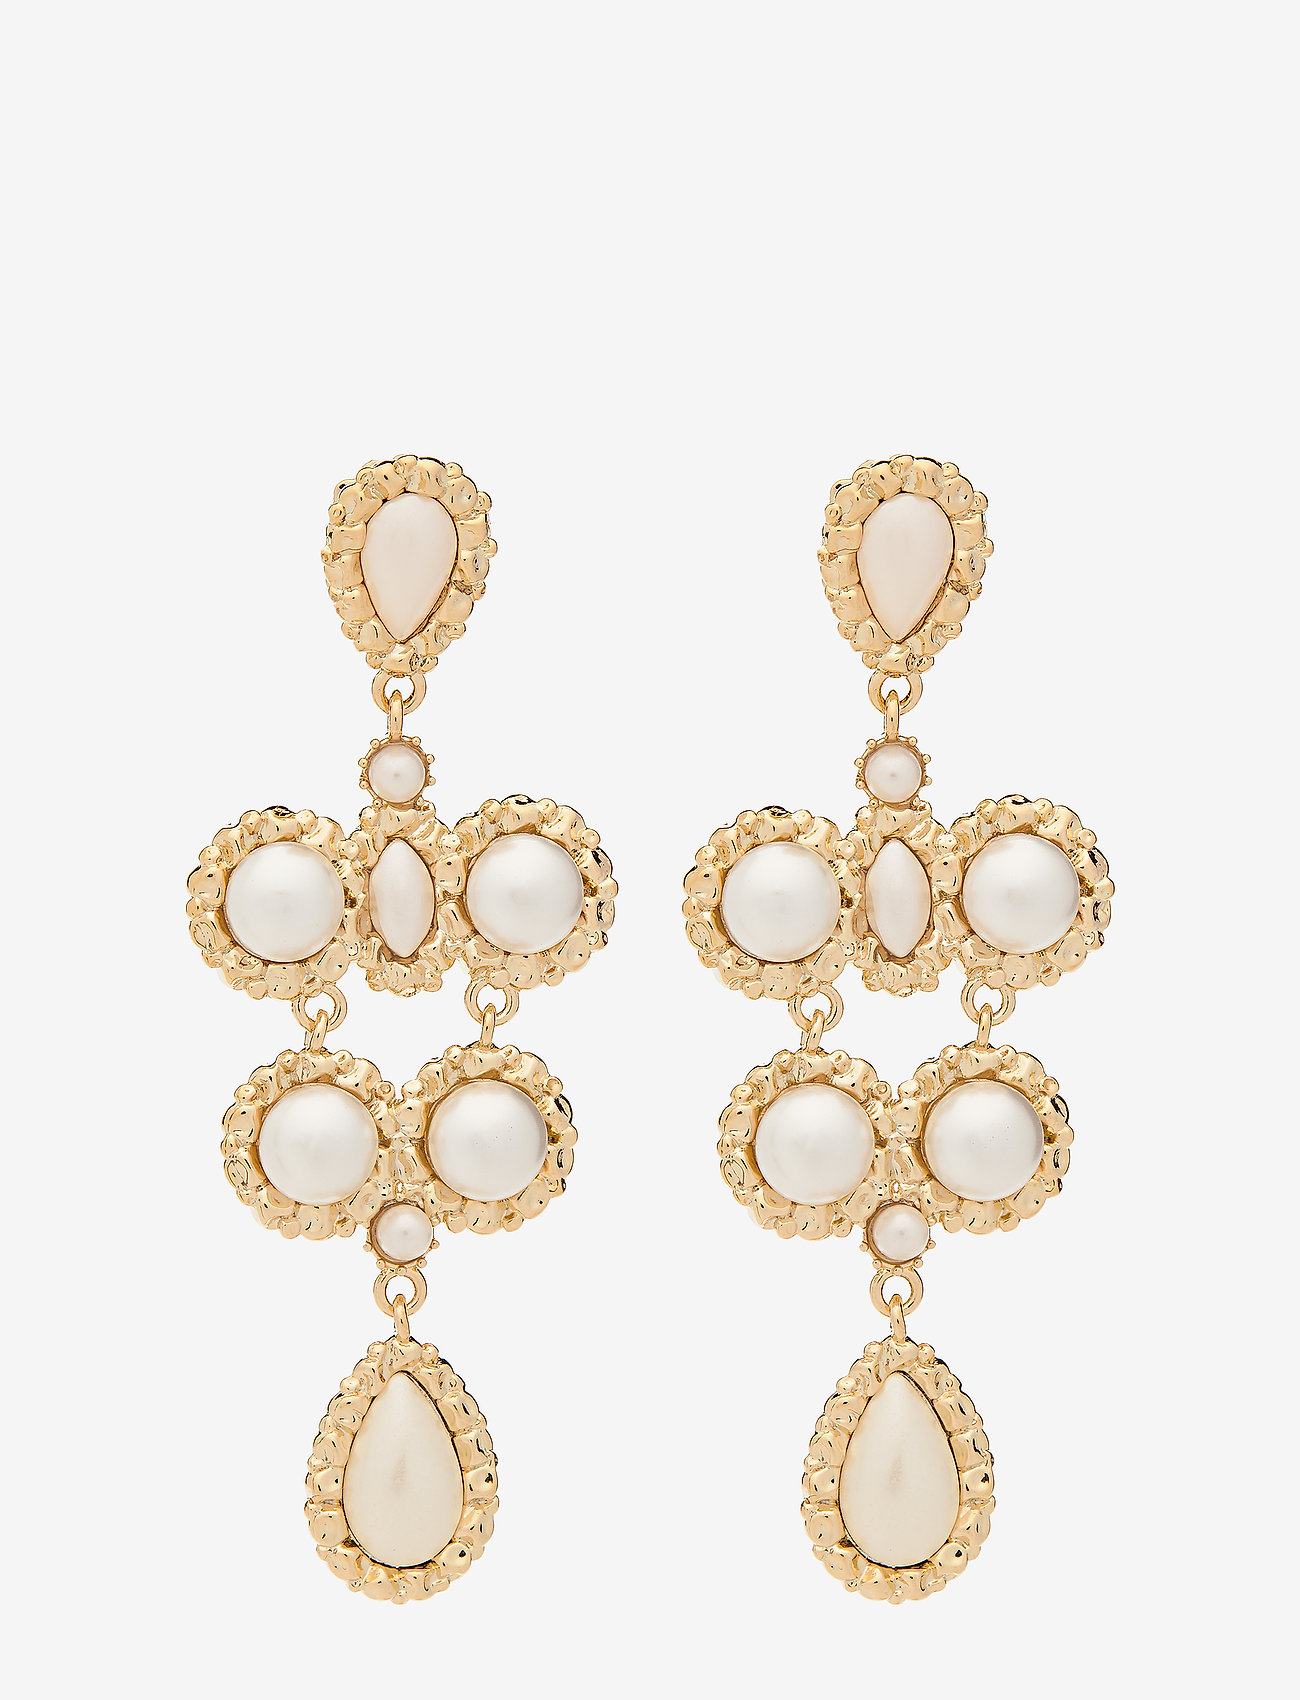 LILY AND ROSE - Miss Kate Pearl earrings - Ivory - statement - ivory